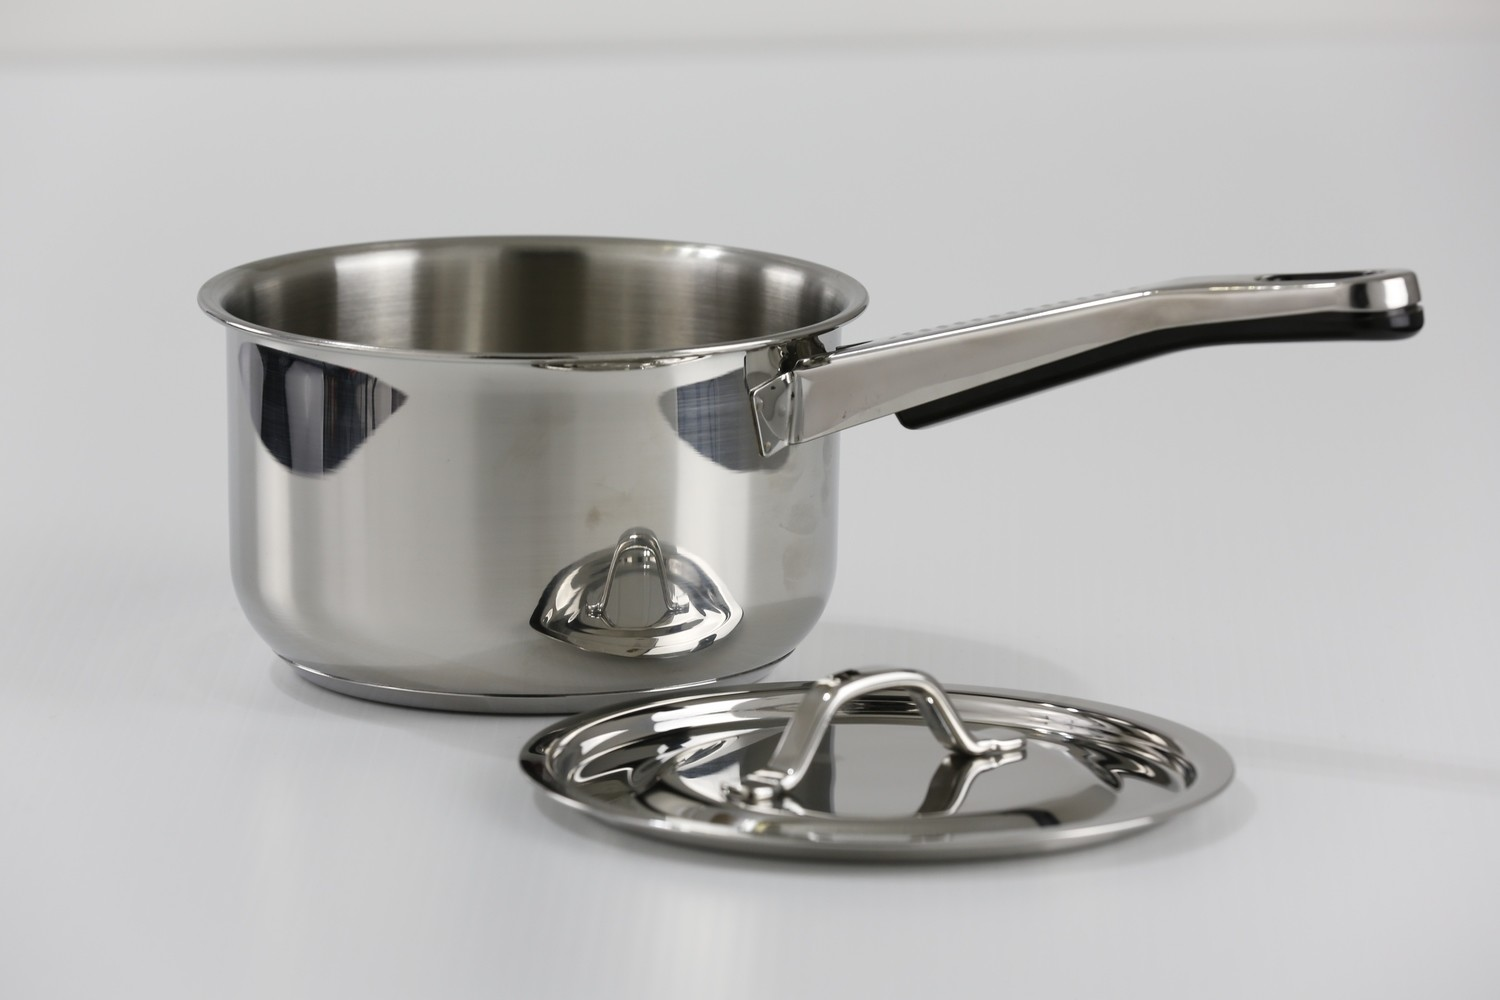 SS1 - 1.8 Qt. Stainless Steel Saucepan with Cover